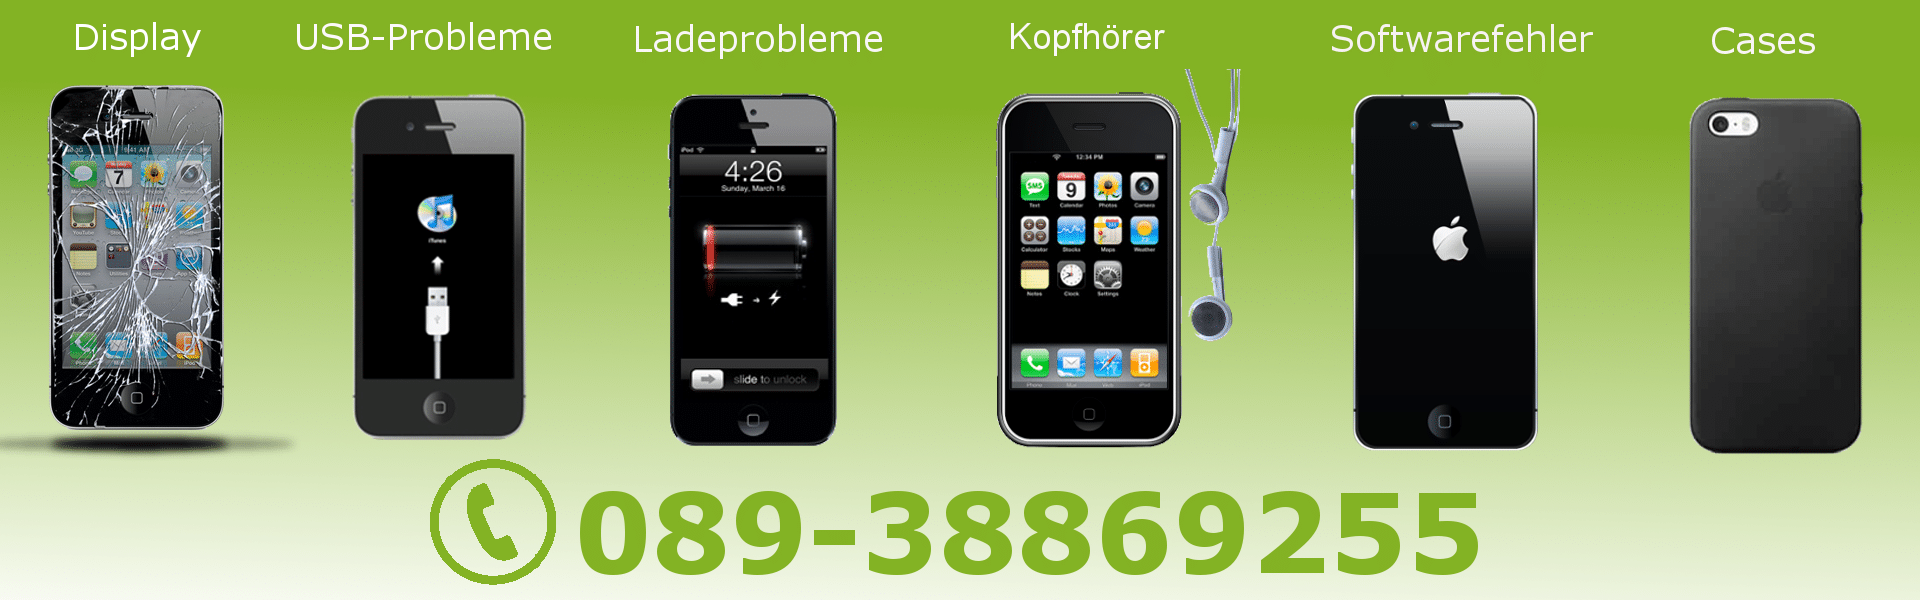 Reparatur express handy iphone samsung reparieren lassen